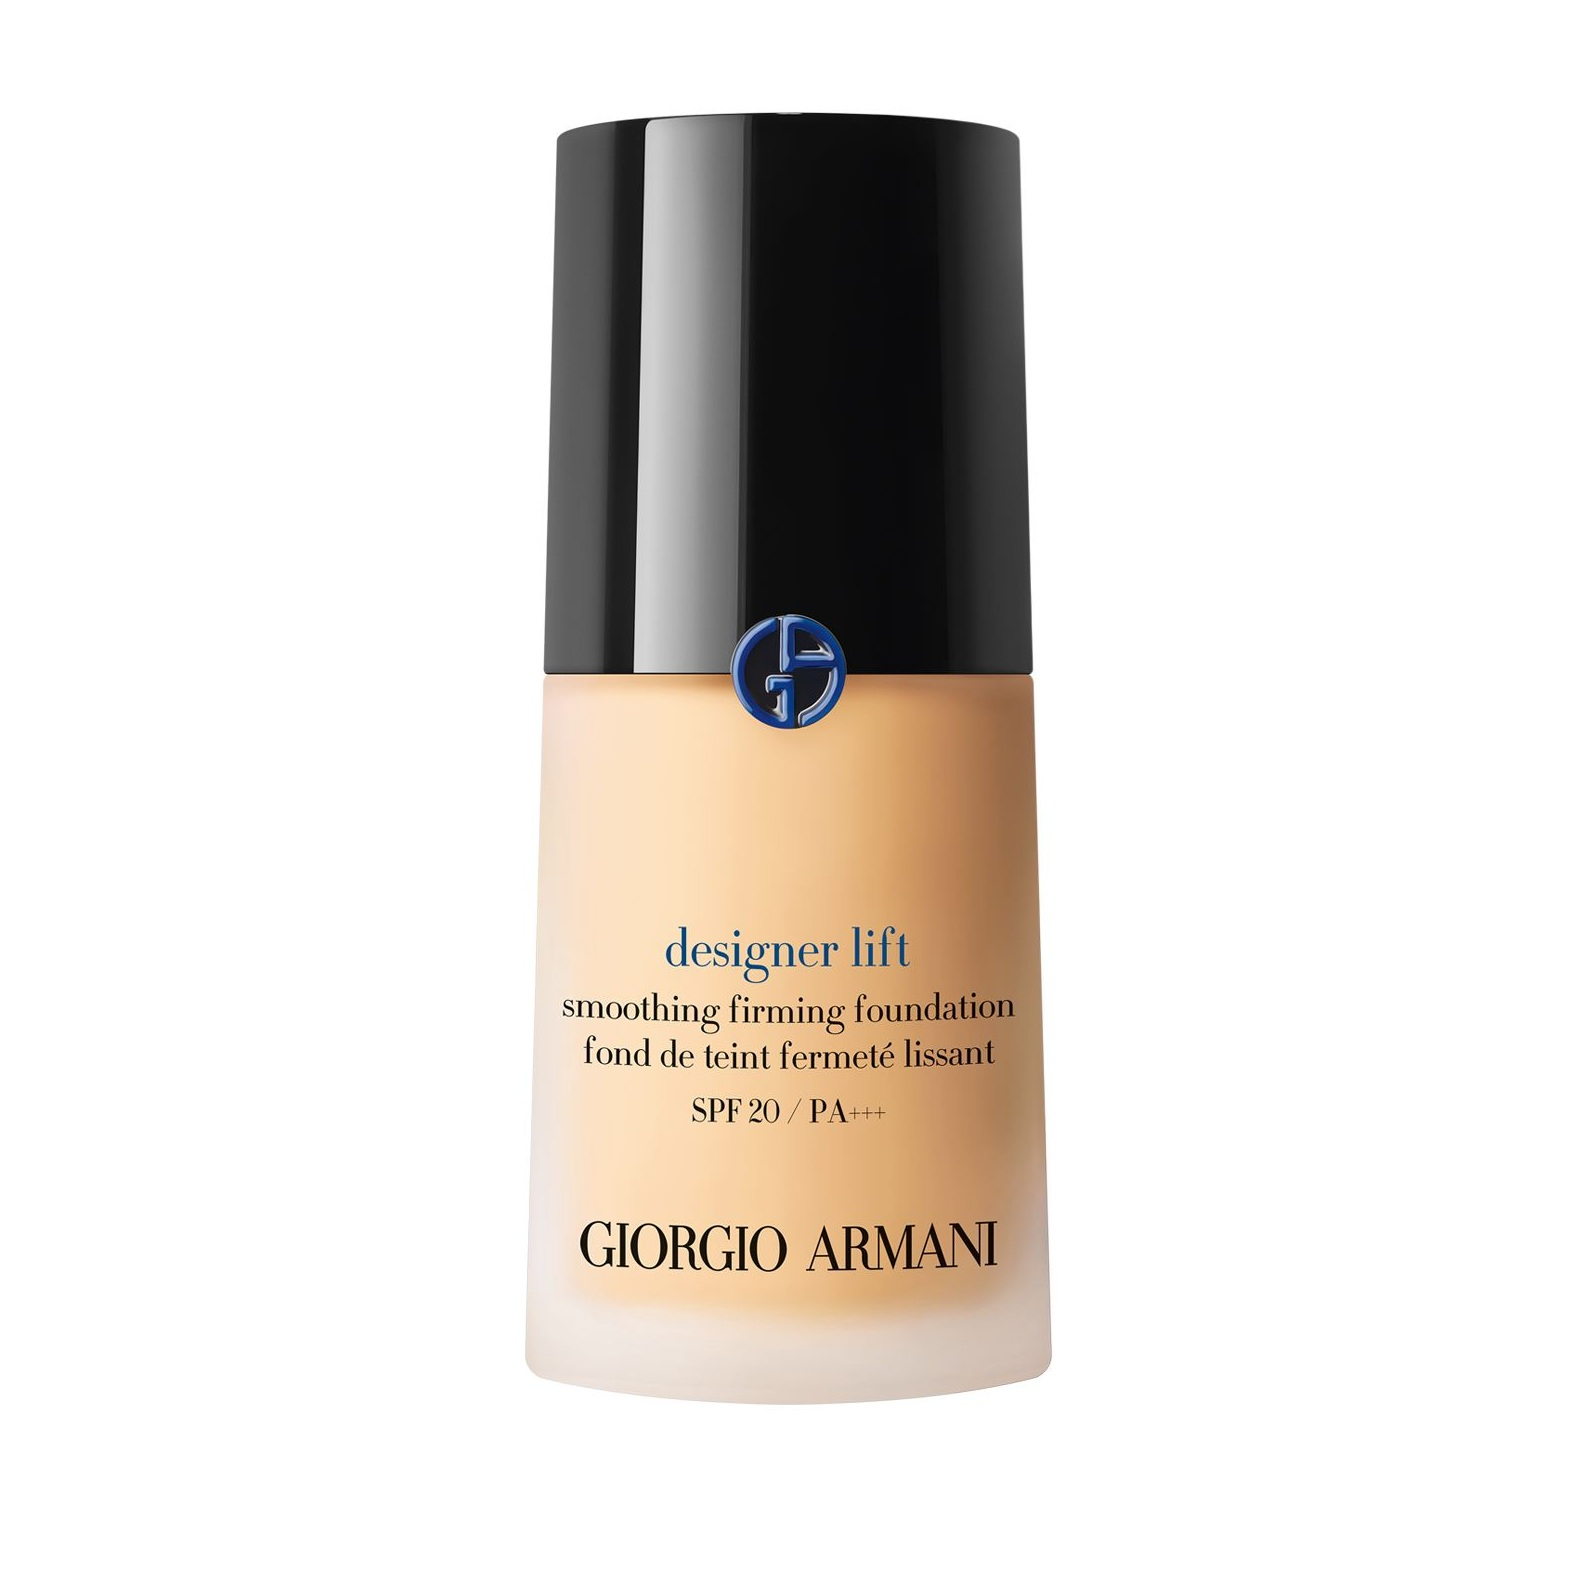 Giorgio Armani Designer Lift Smoothing Firming Foundation with SPF 20